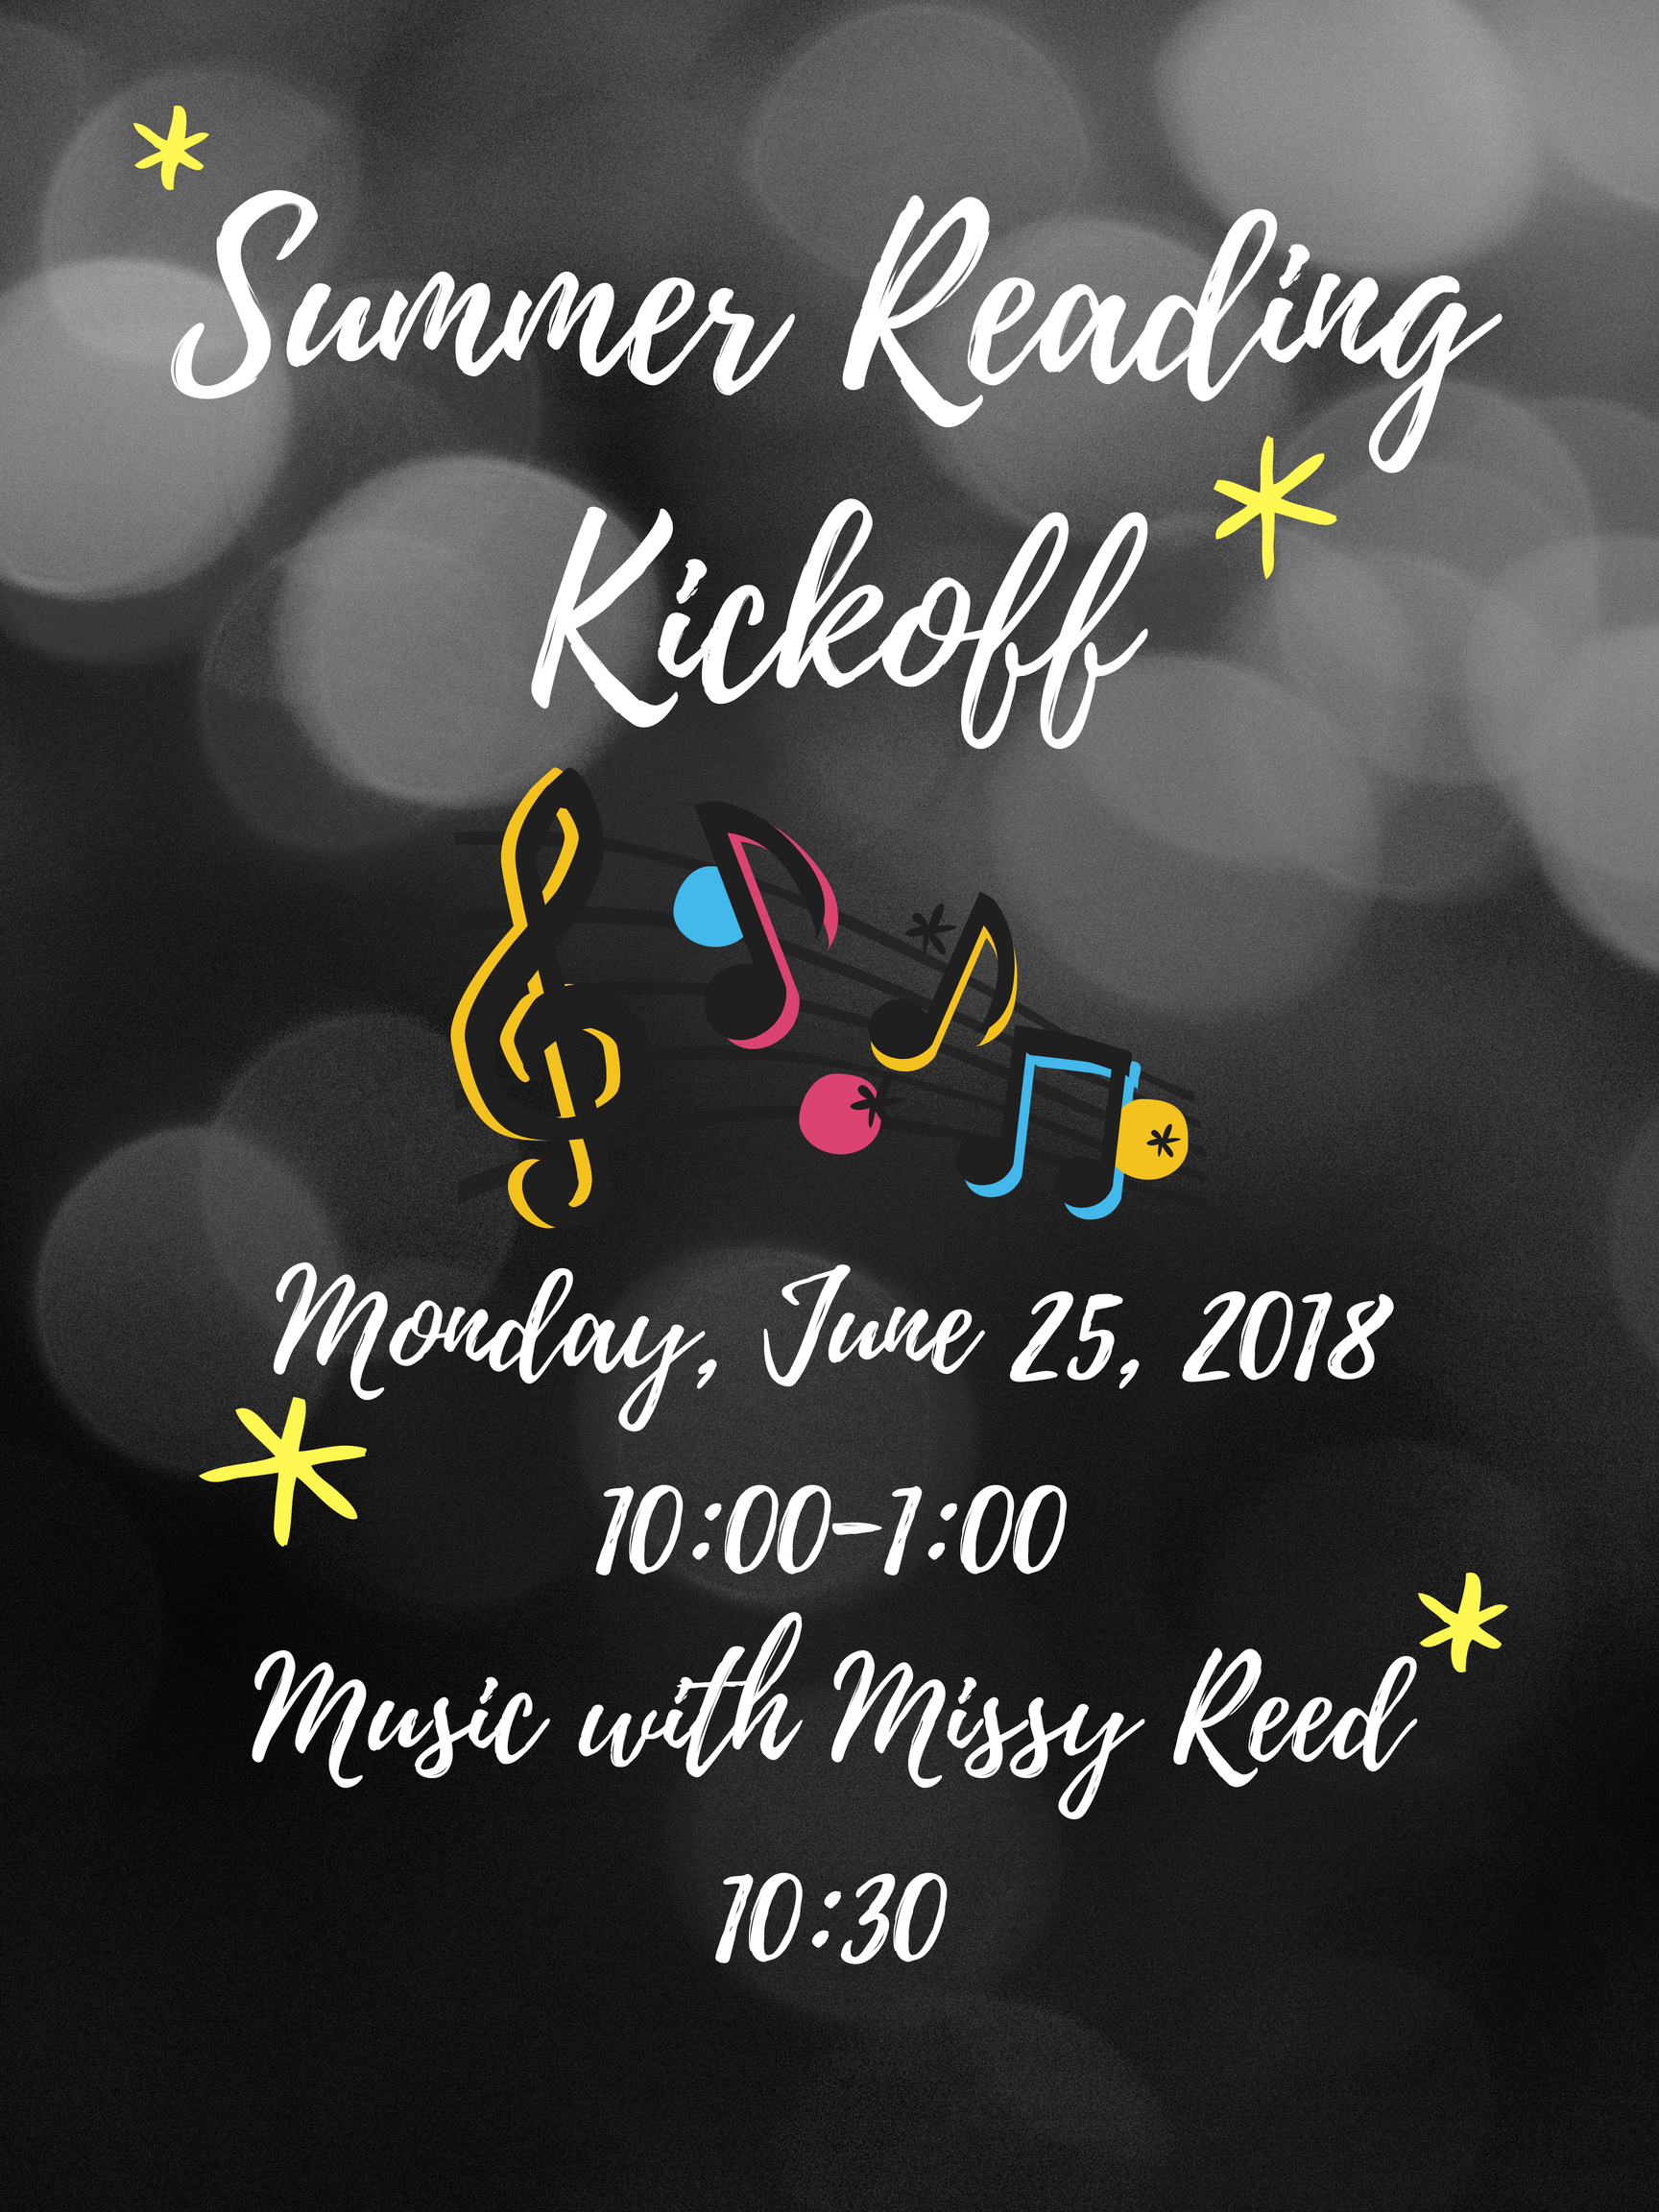 Summer Reading Kickoff!